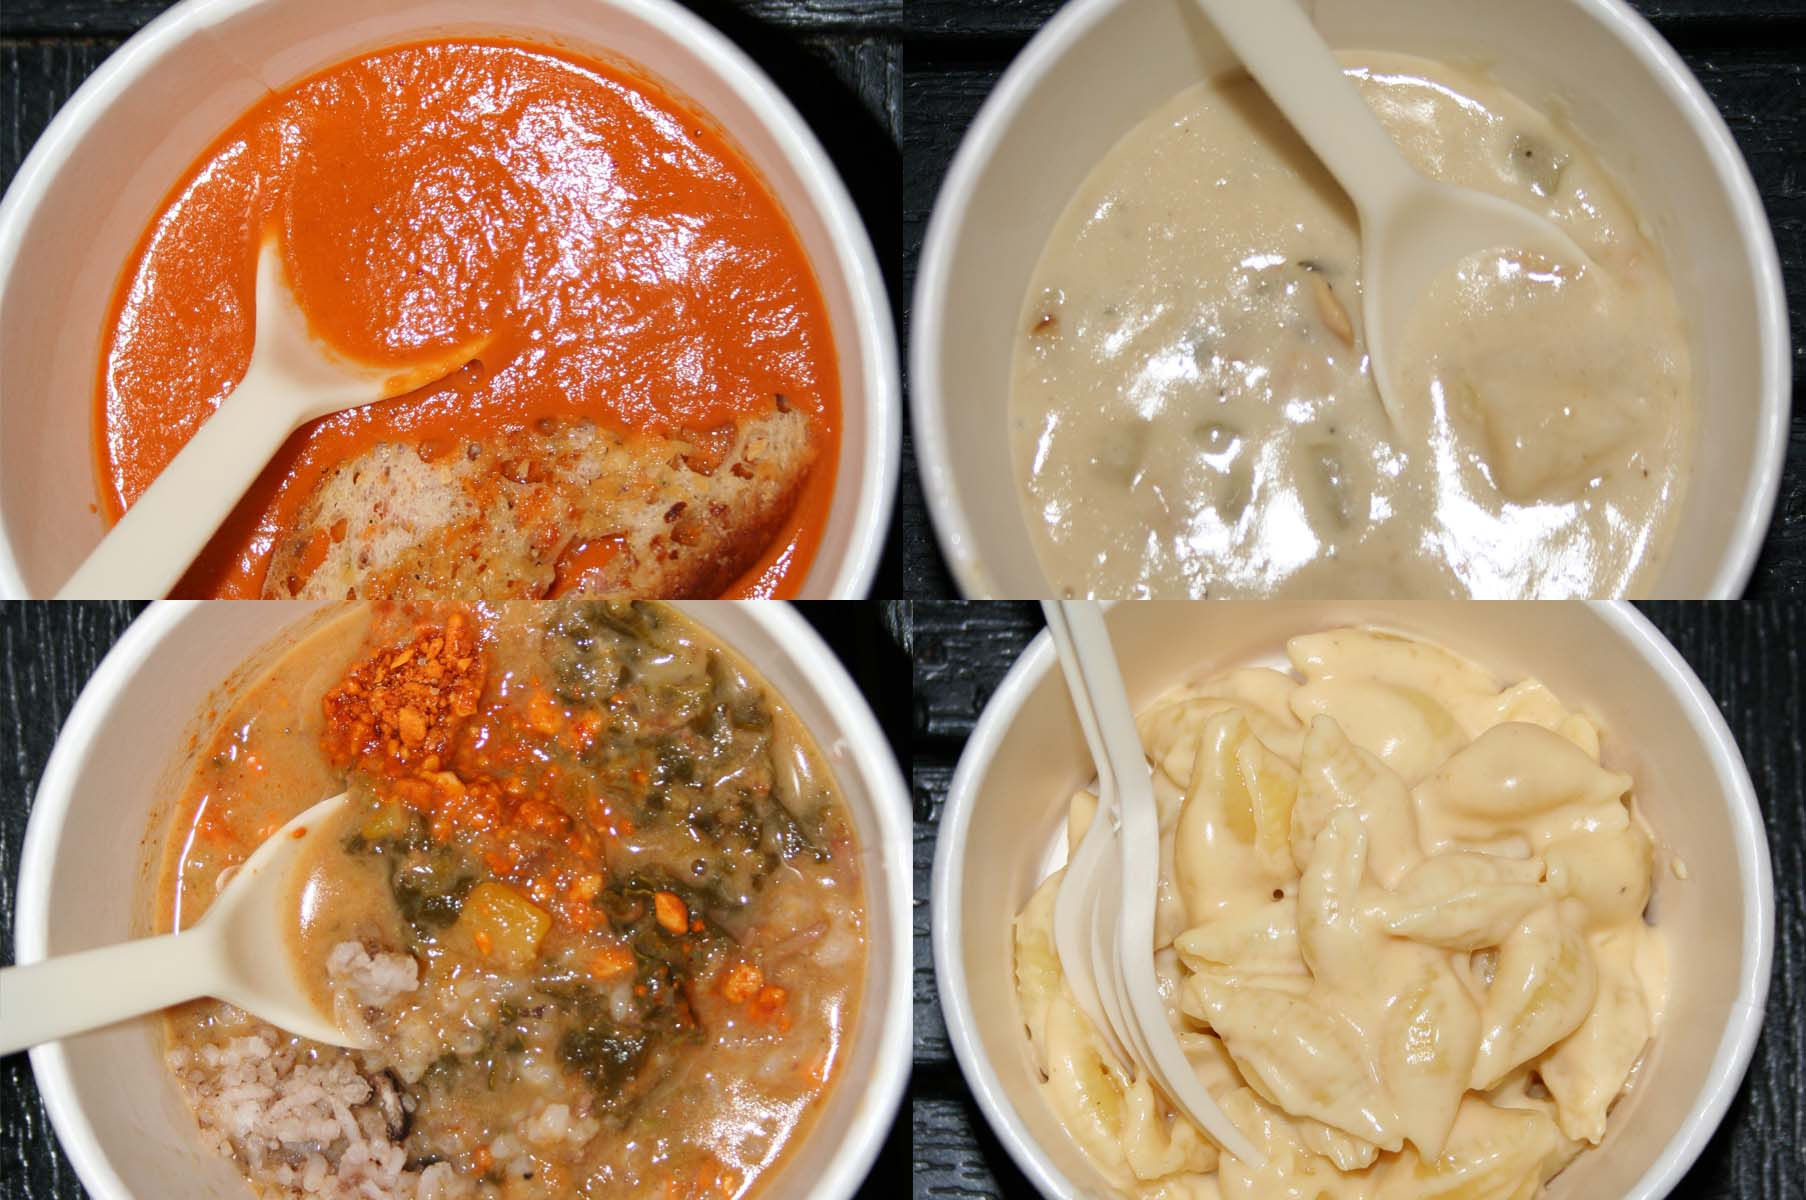 The opening week bowls -- (clockwise from top left) cream of tomato soup, New England clam chowder, macaroni and cheese, and Jamaican curry goat stew . (Photo: Mark Heckathorn/DC on Heels)